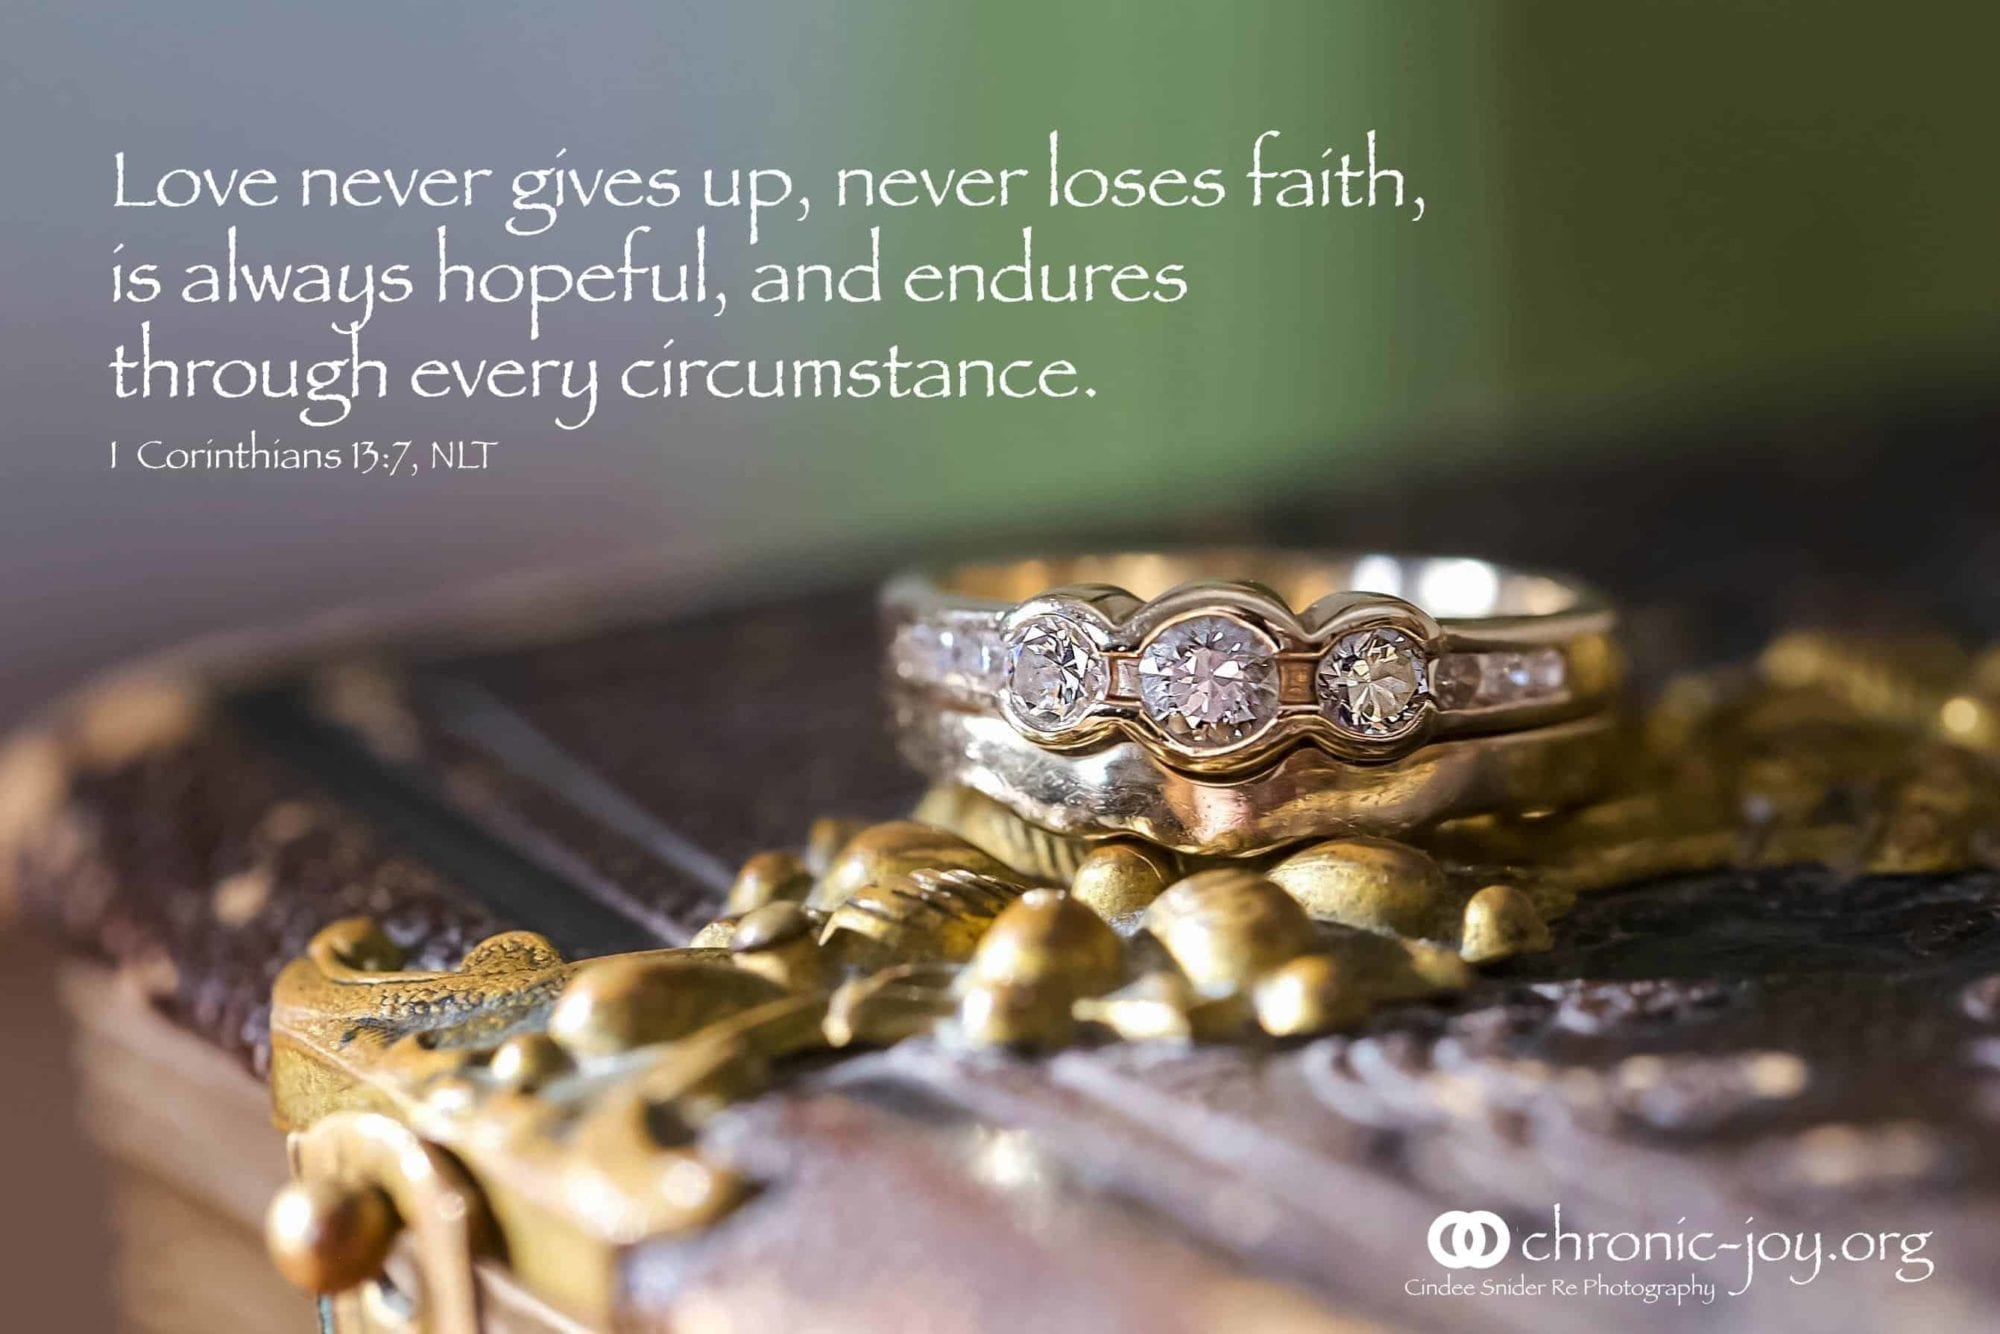 Love never gives up, never loses faith, is always hopeful, and endures through every circumstance. 1 Corinthians 13:7 NLT